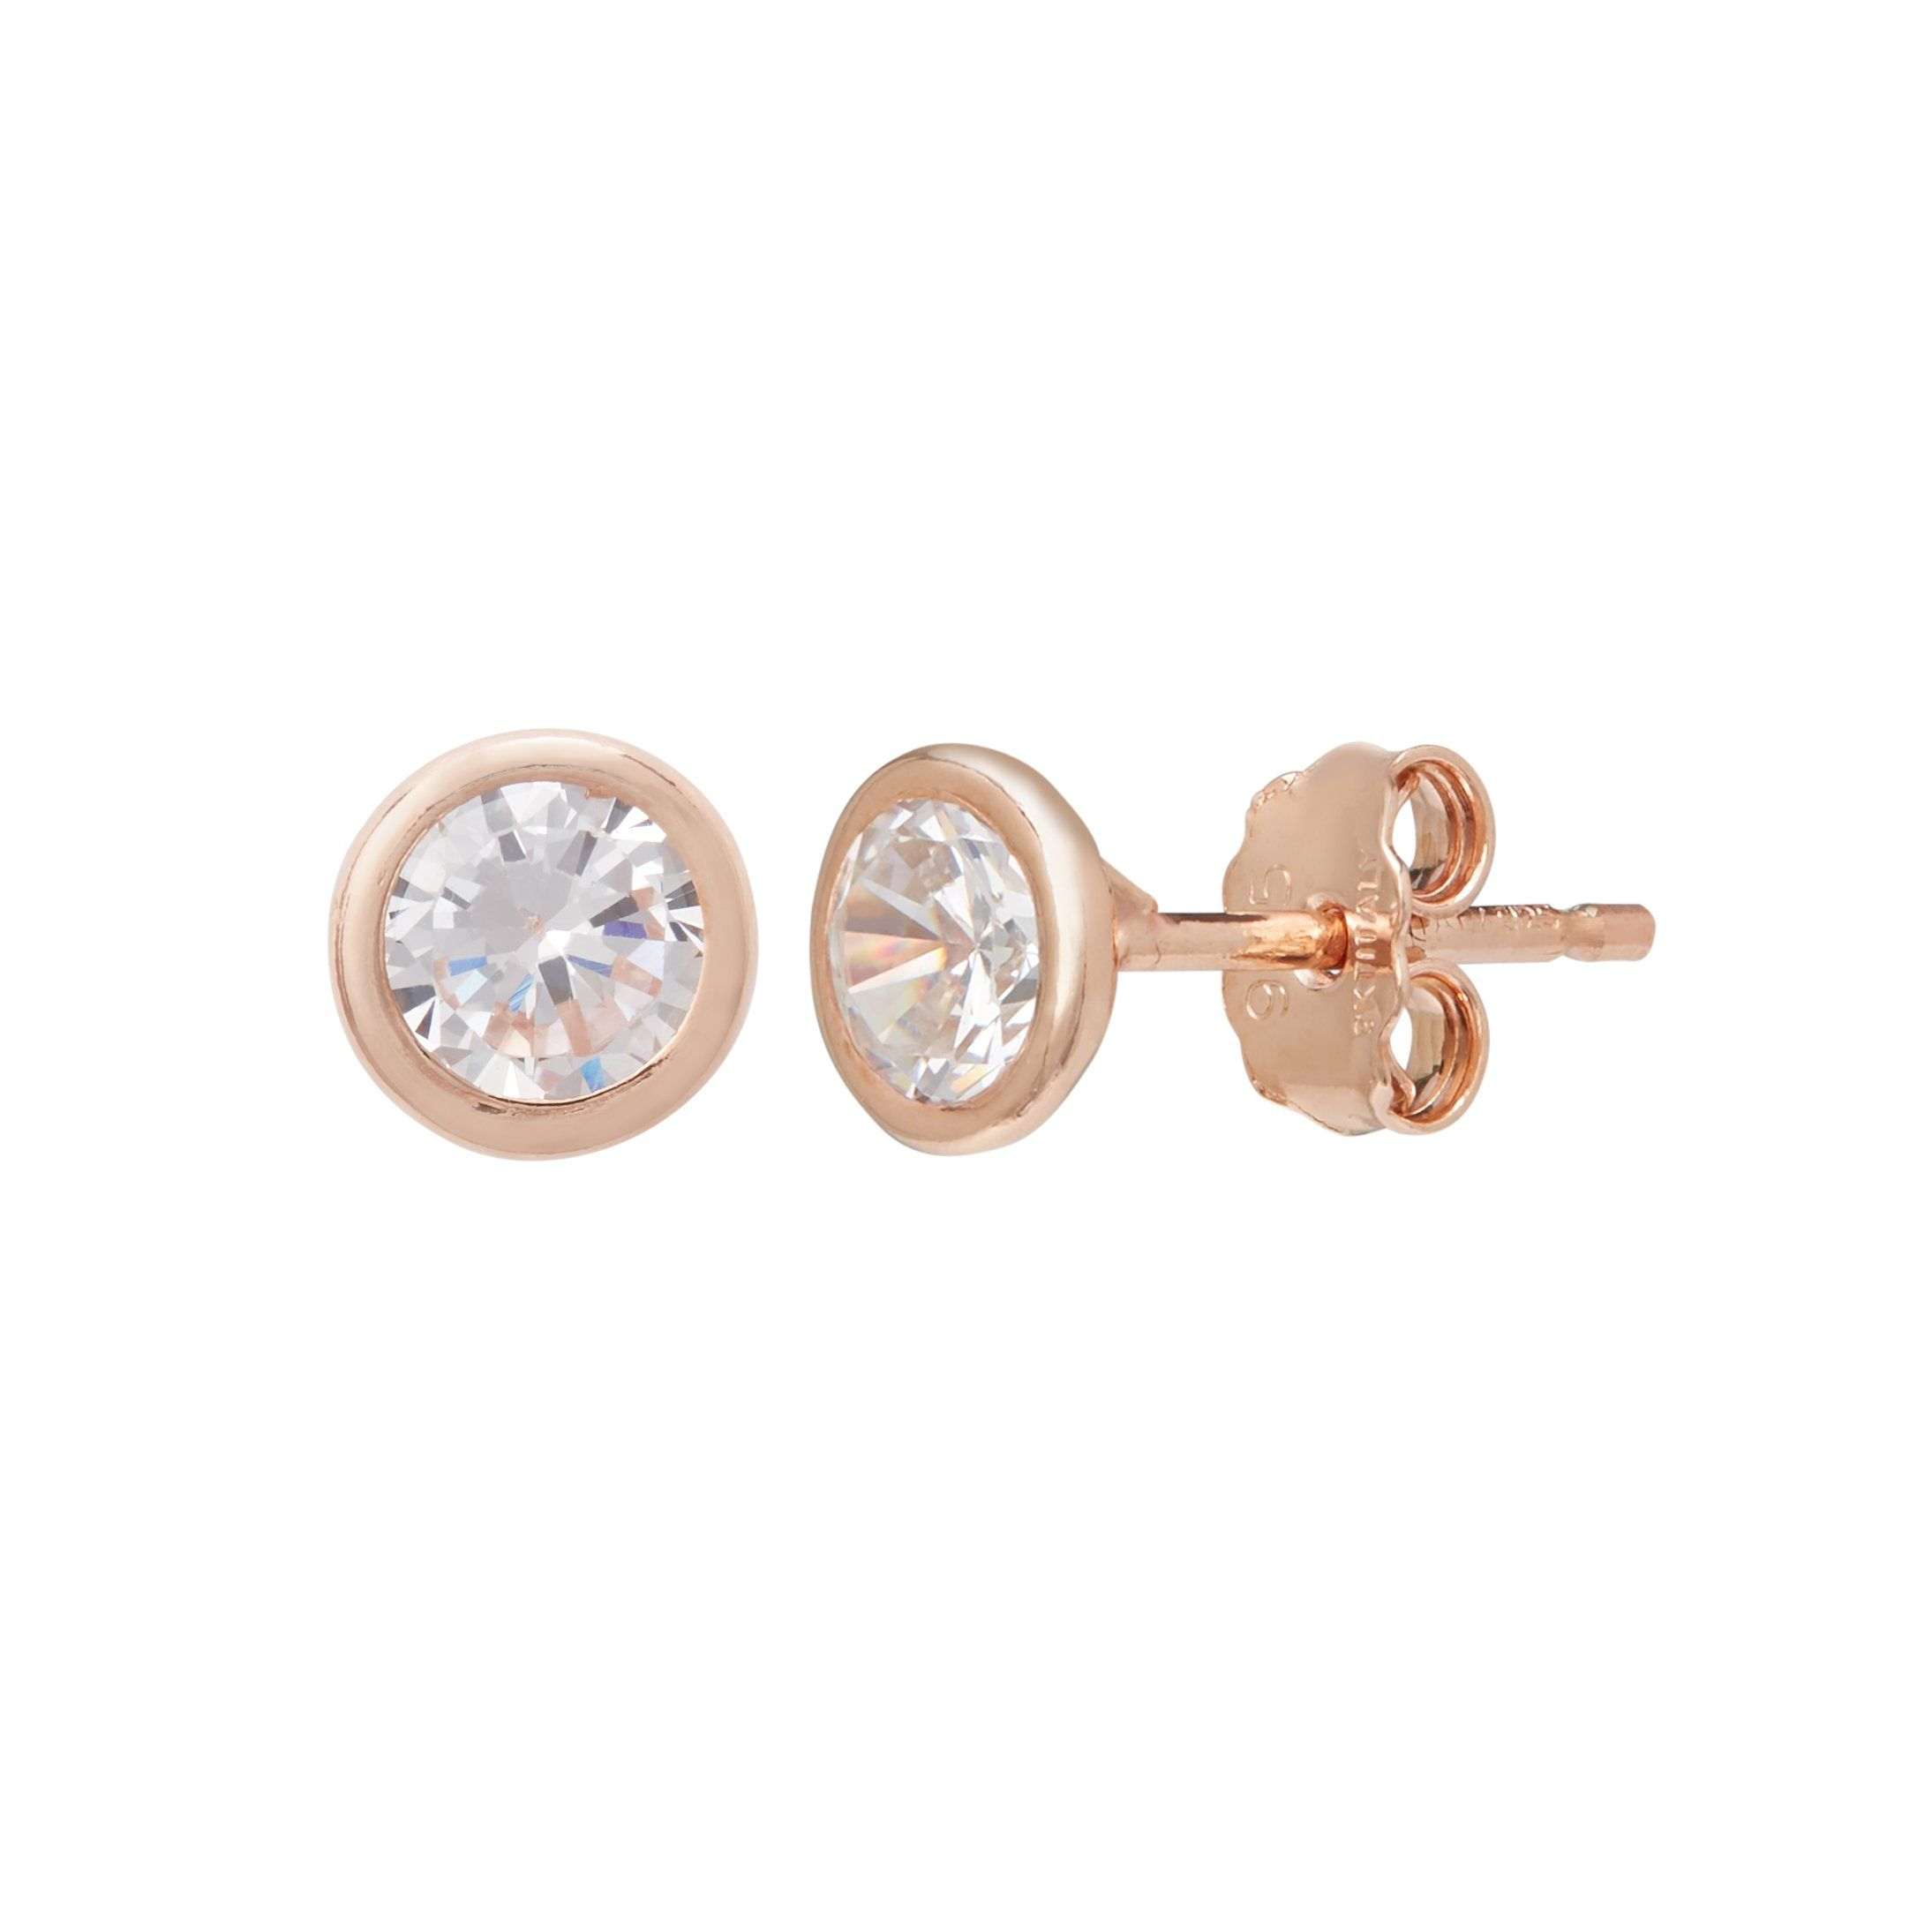 Bevilles 9ct Rose Gold Silver Infused Cubic Zirconia Stud Earrings 5mm Ebay